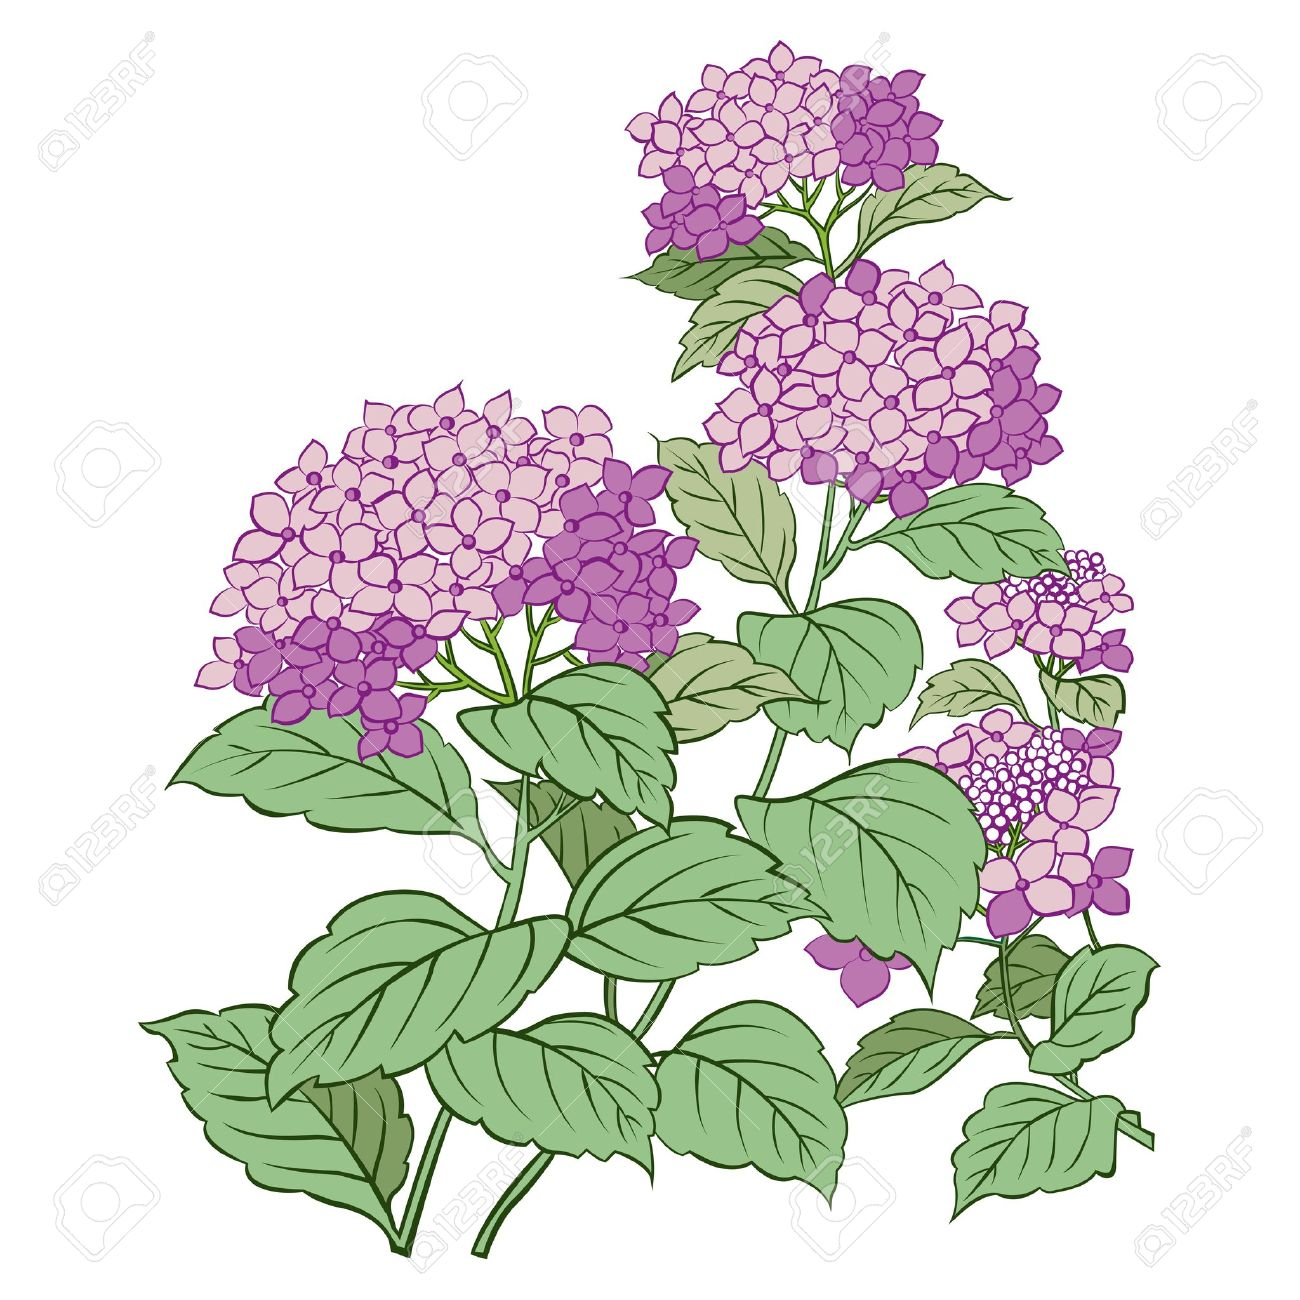 Hydrangea flower and leaf isolated on white Stock Vector - 13395027